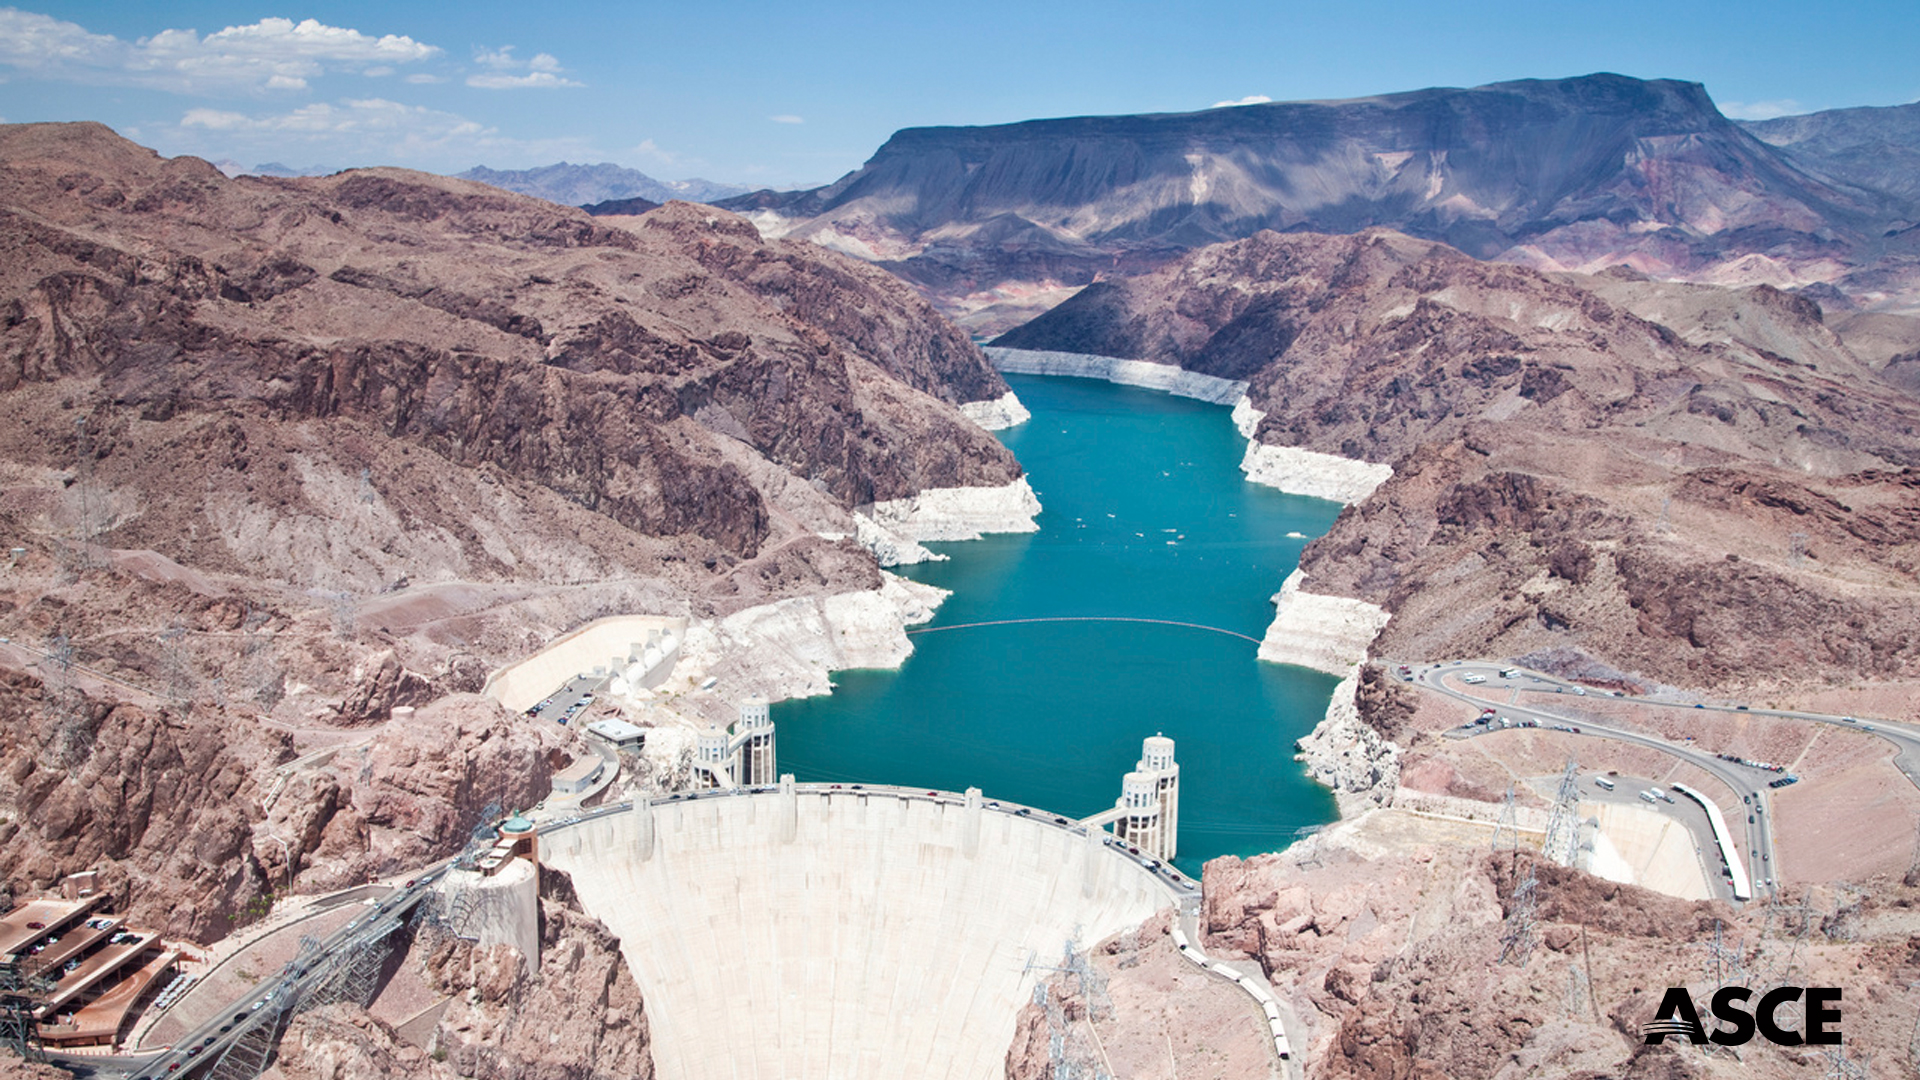 ASCE Hoover Dam